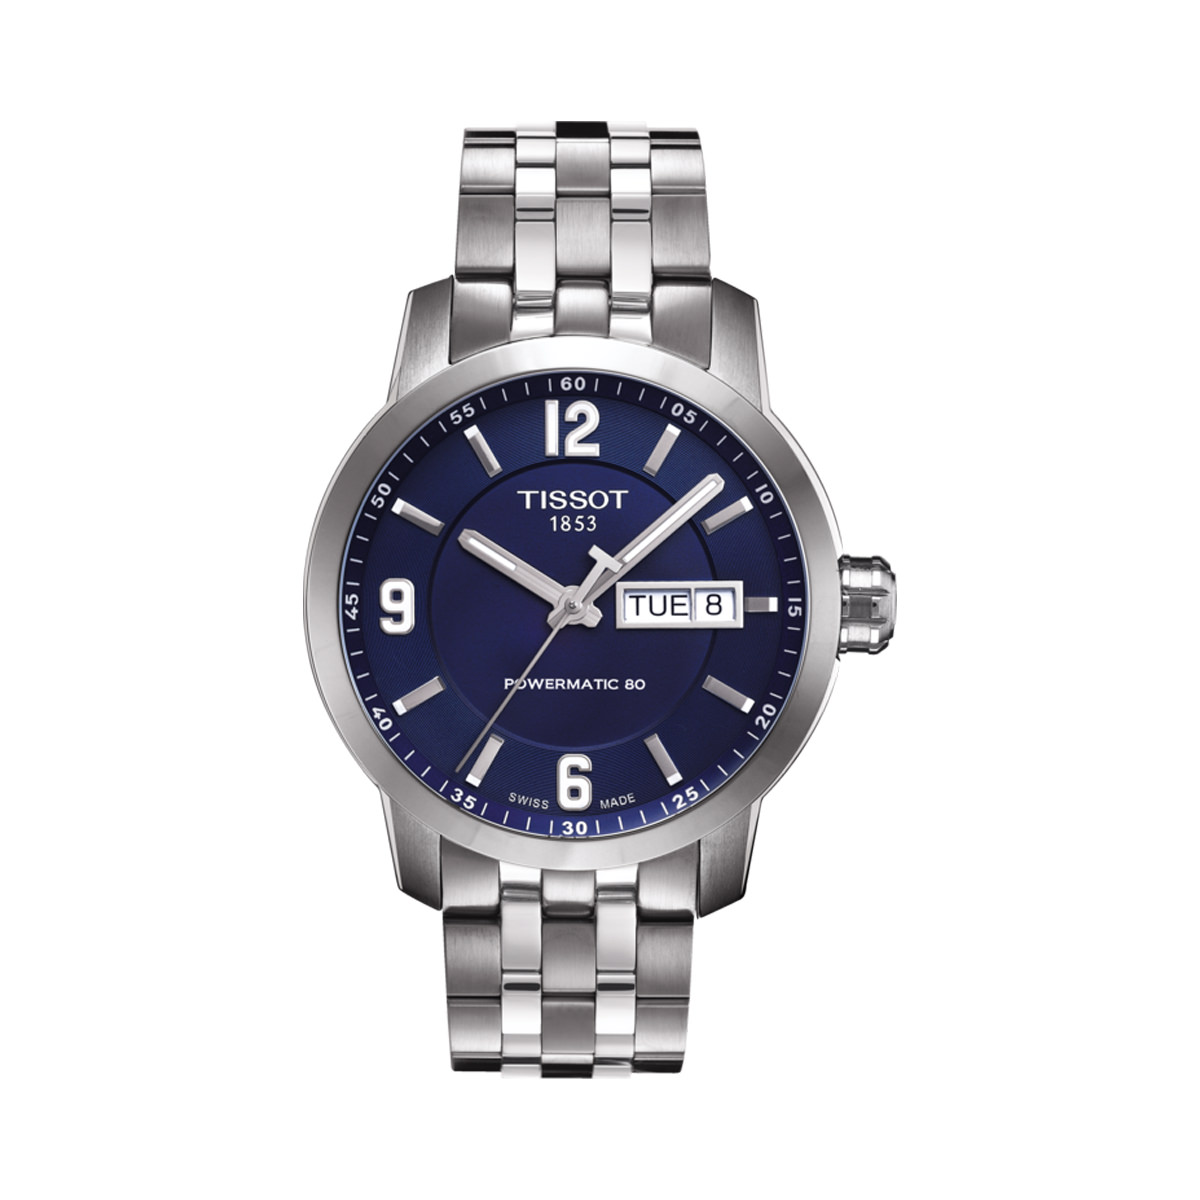 Tissot PRC200 PowerMatic 80 Blue Dial Watch